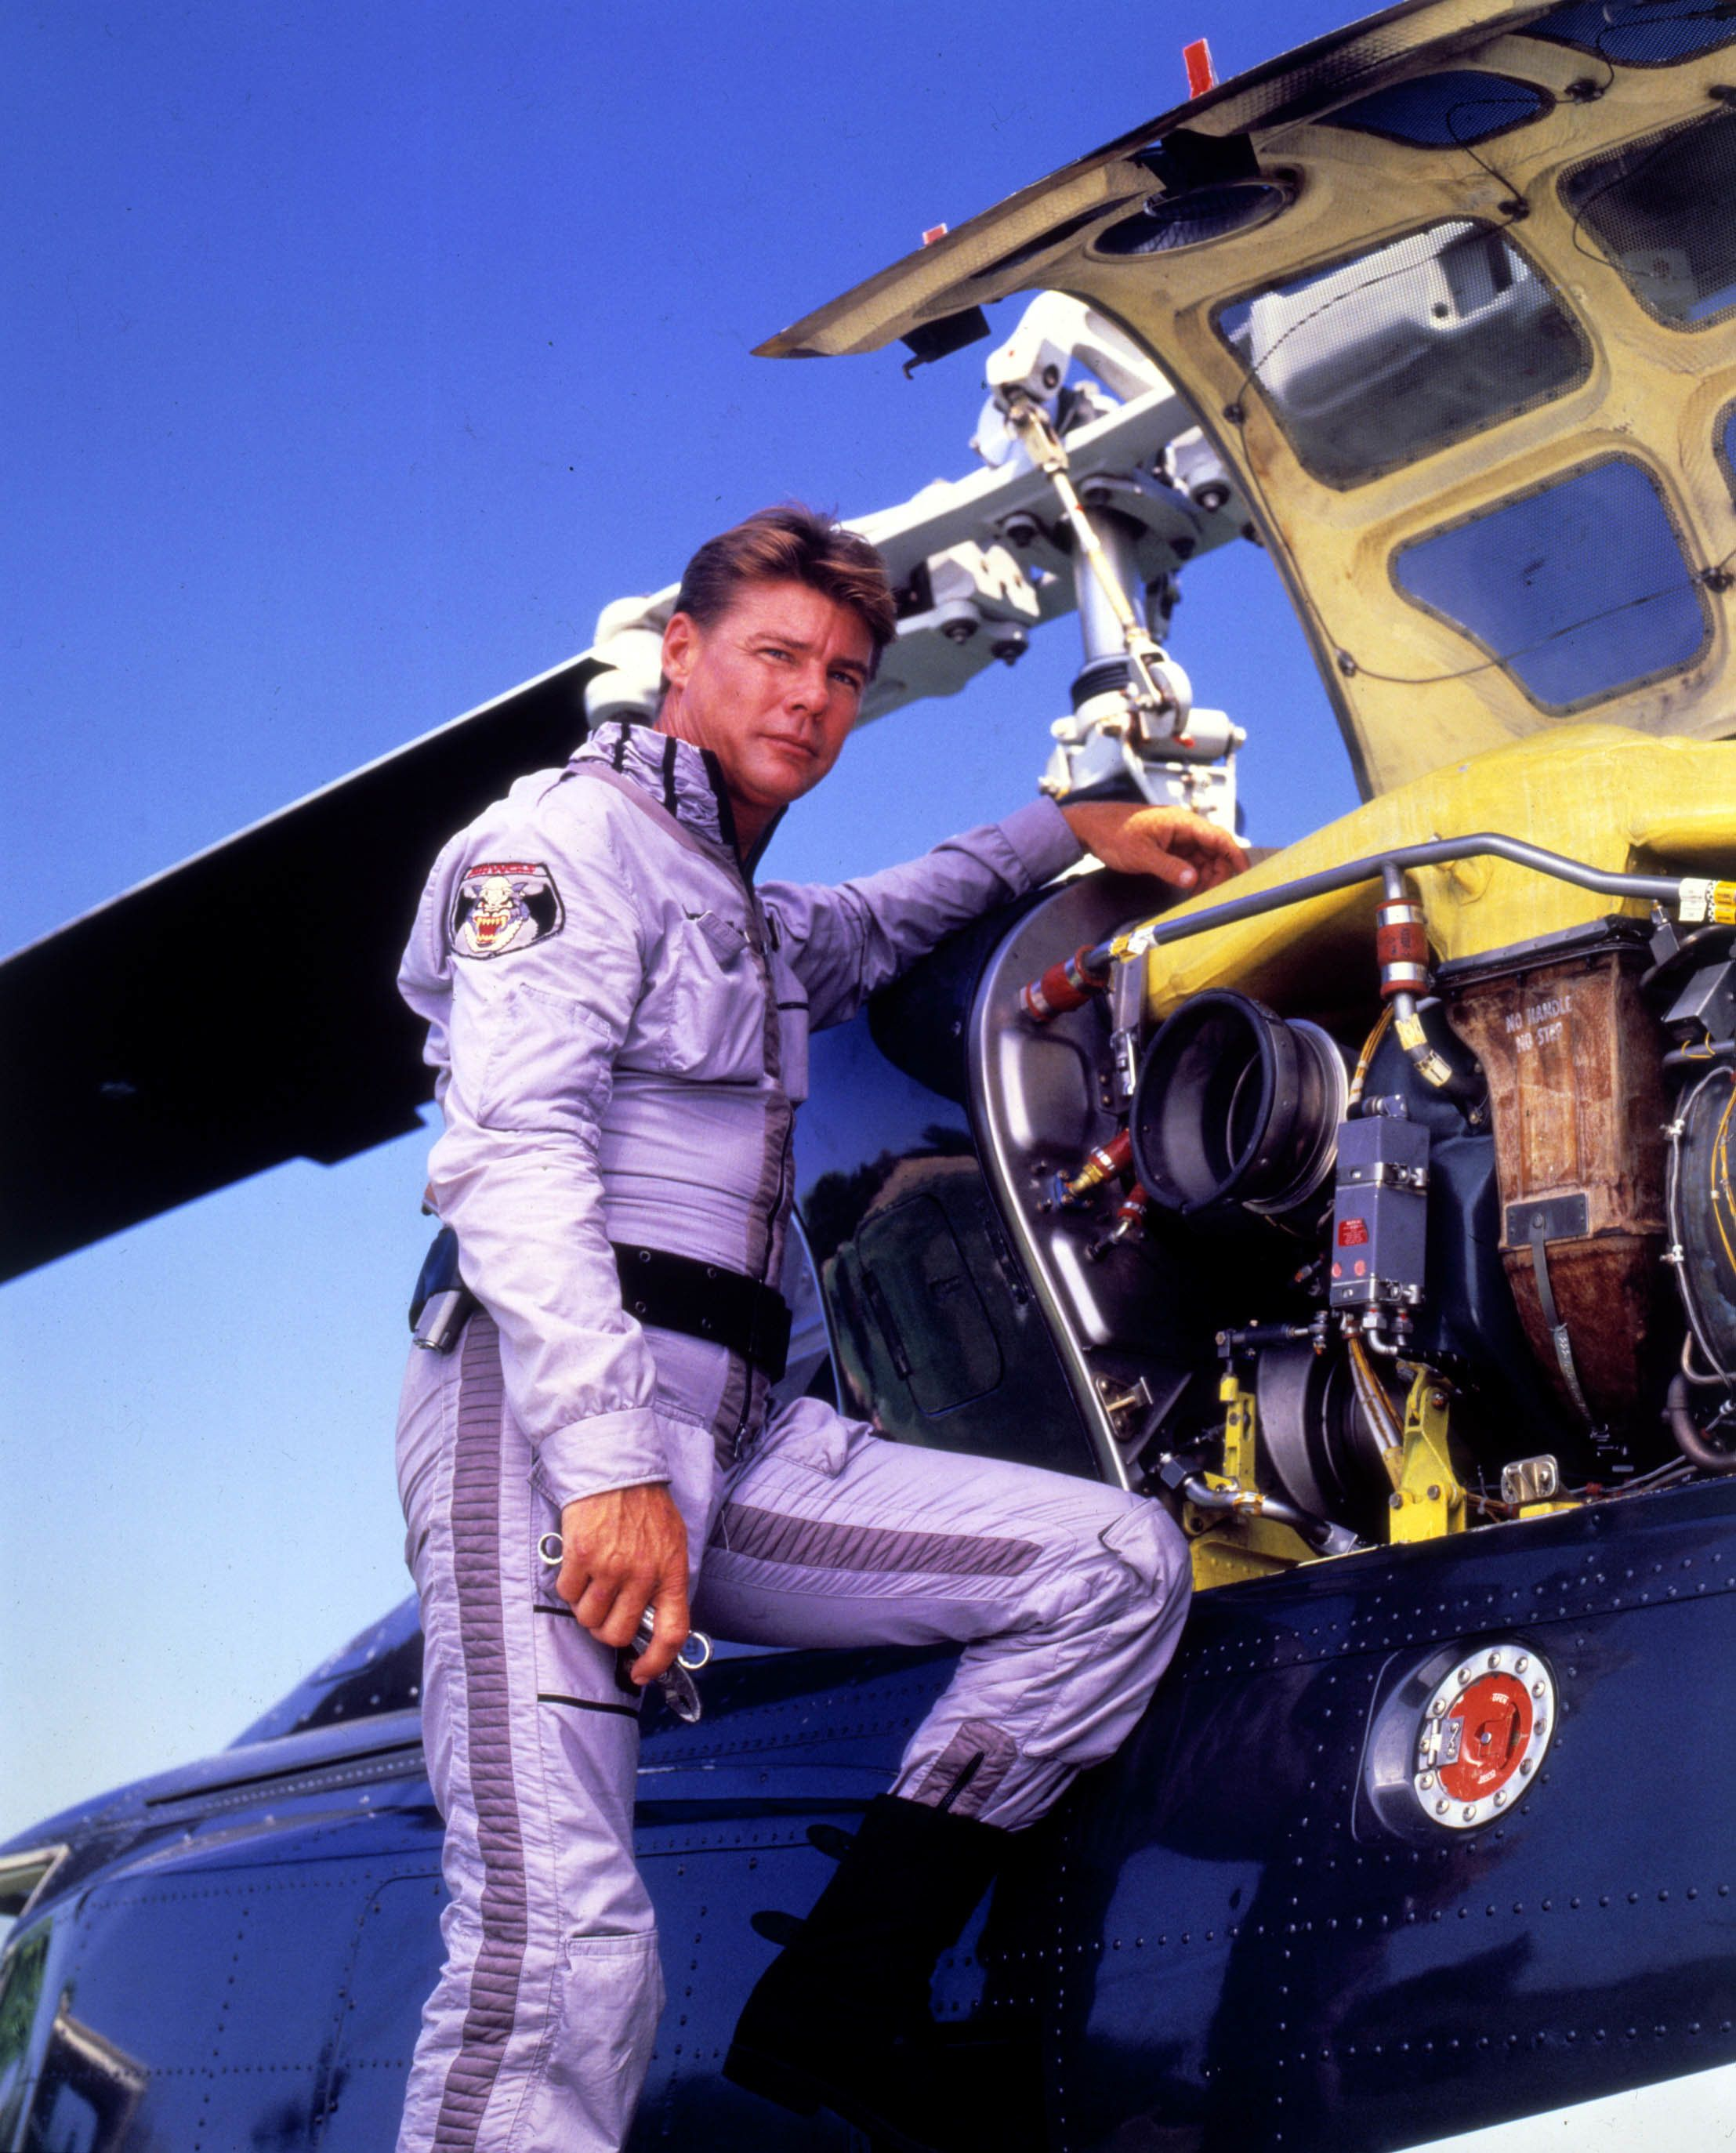 'Airwolf' star Jan-Michael Vincent dead at 74 after suffering cardiac arrest